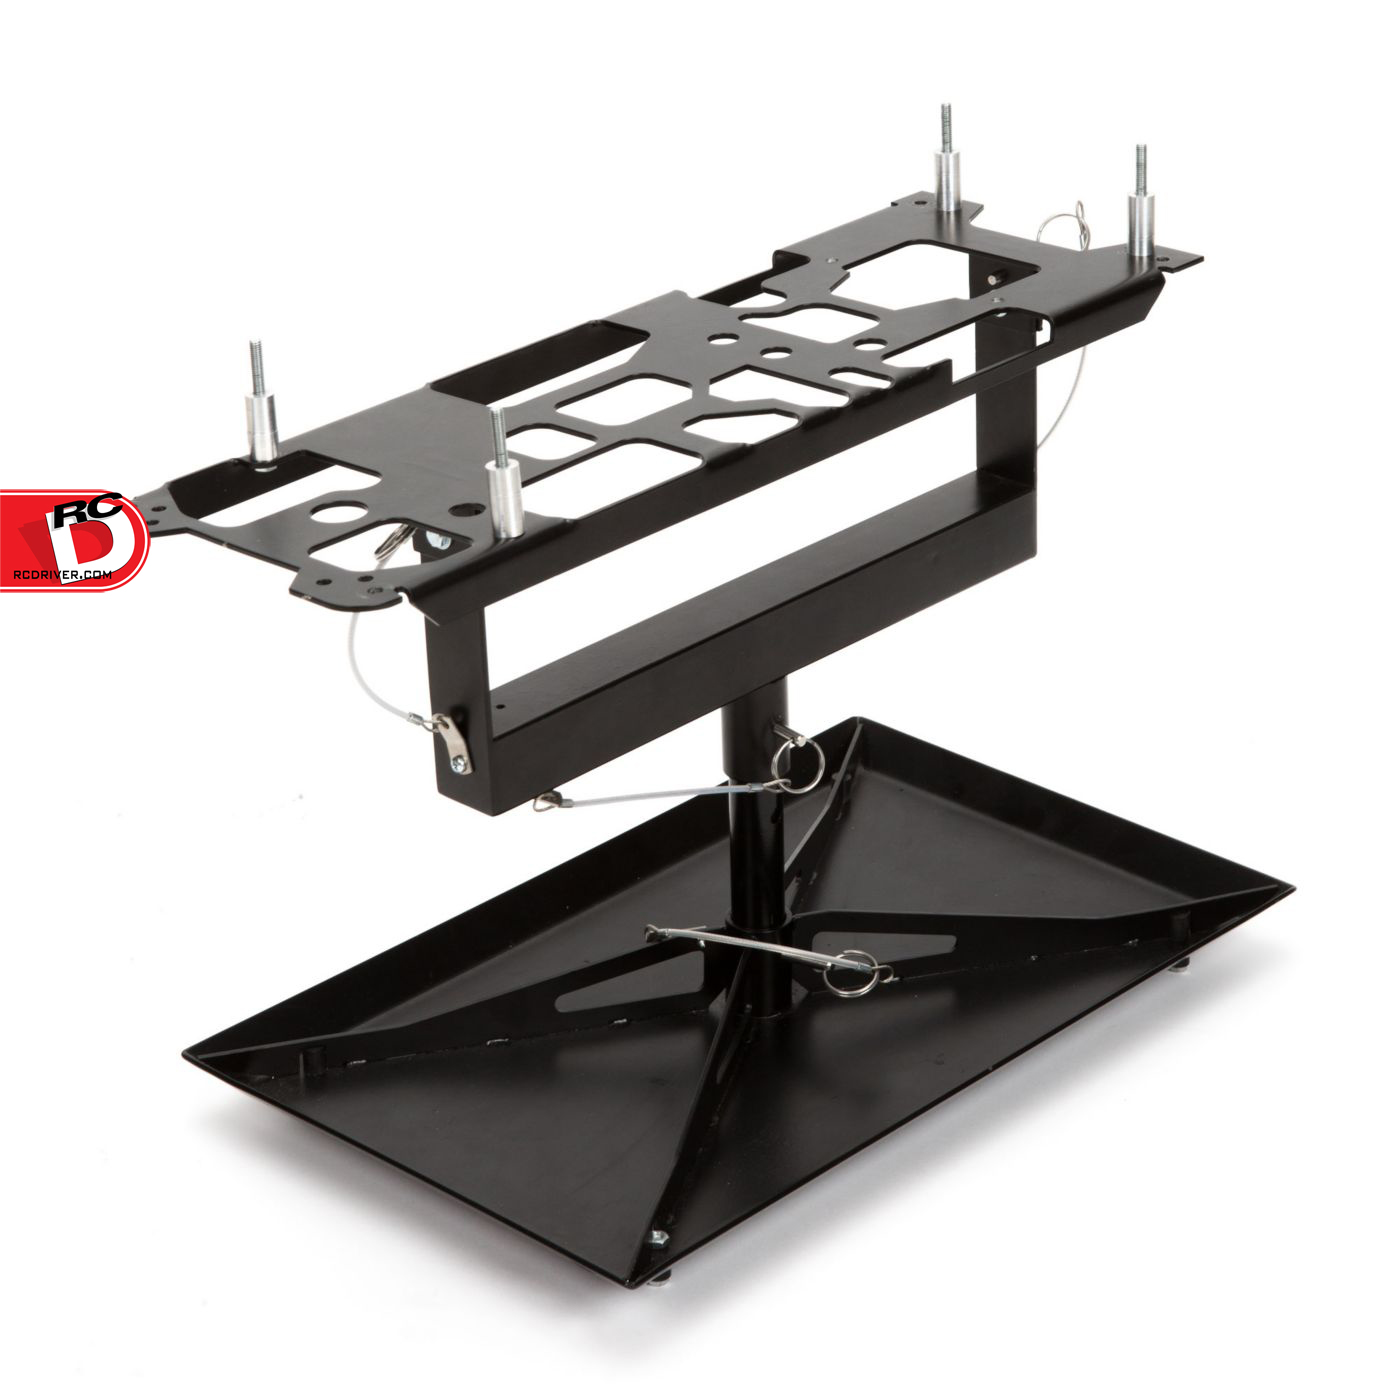 Dynamite Large Scale Work Stand for the HPI Baja, 5iveT, Mini WRC and DBXL